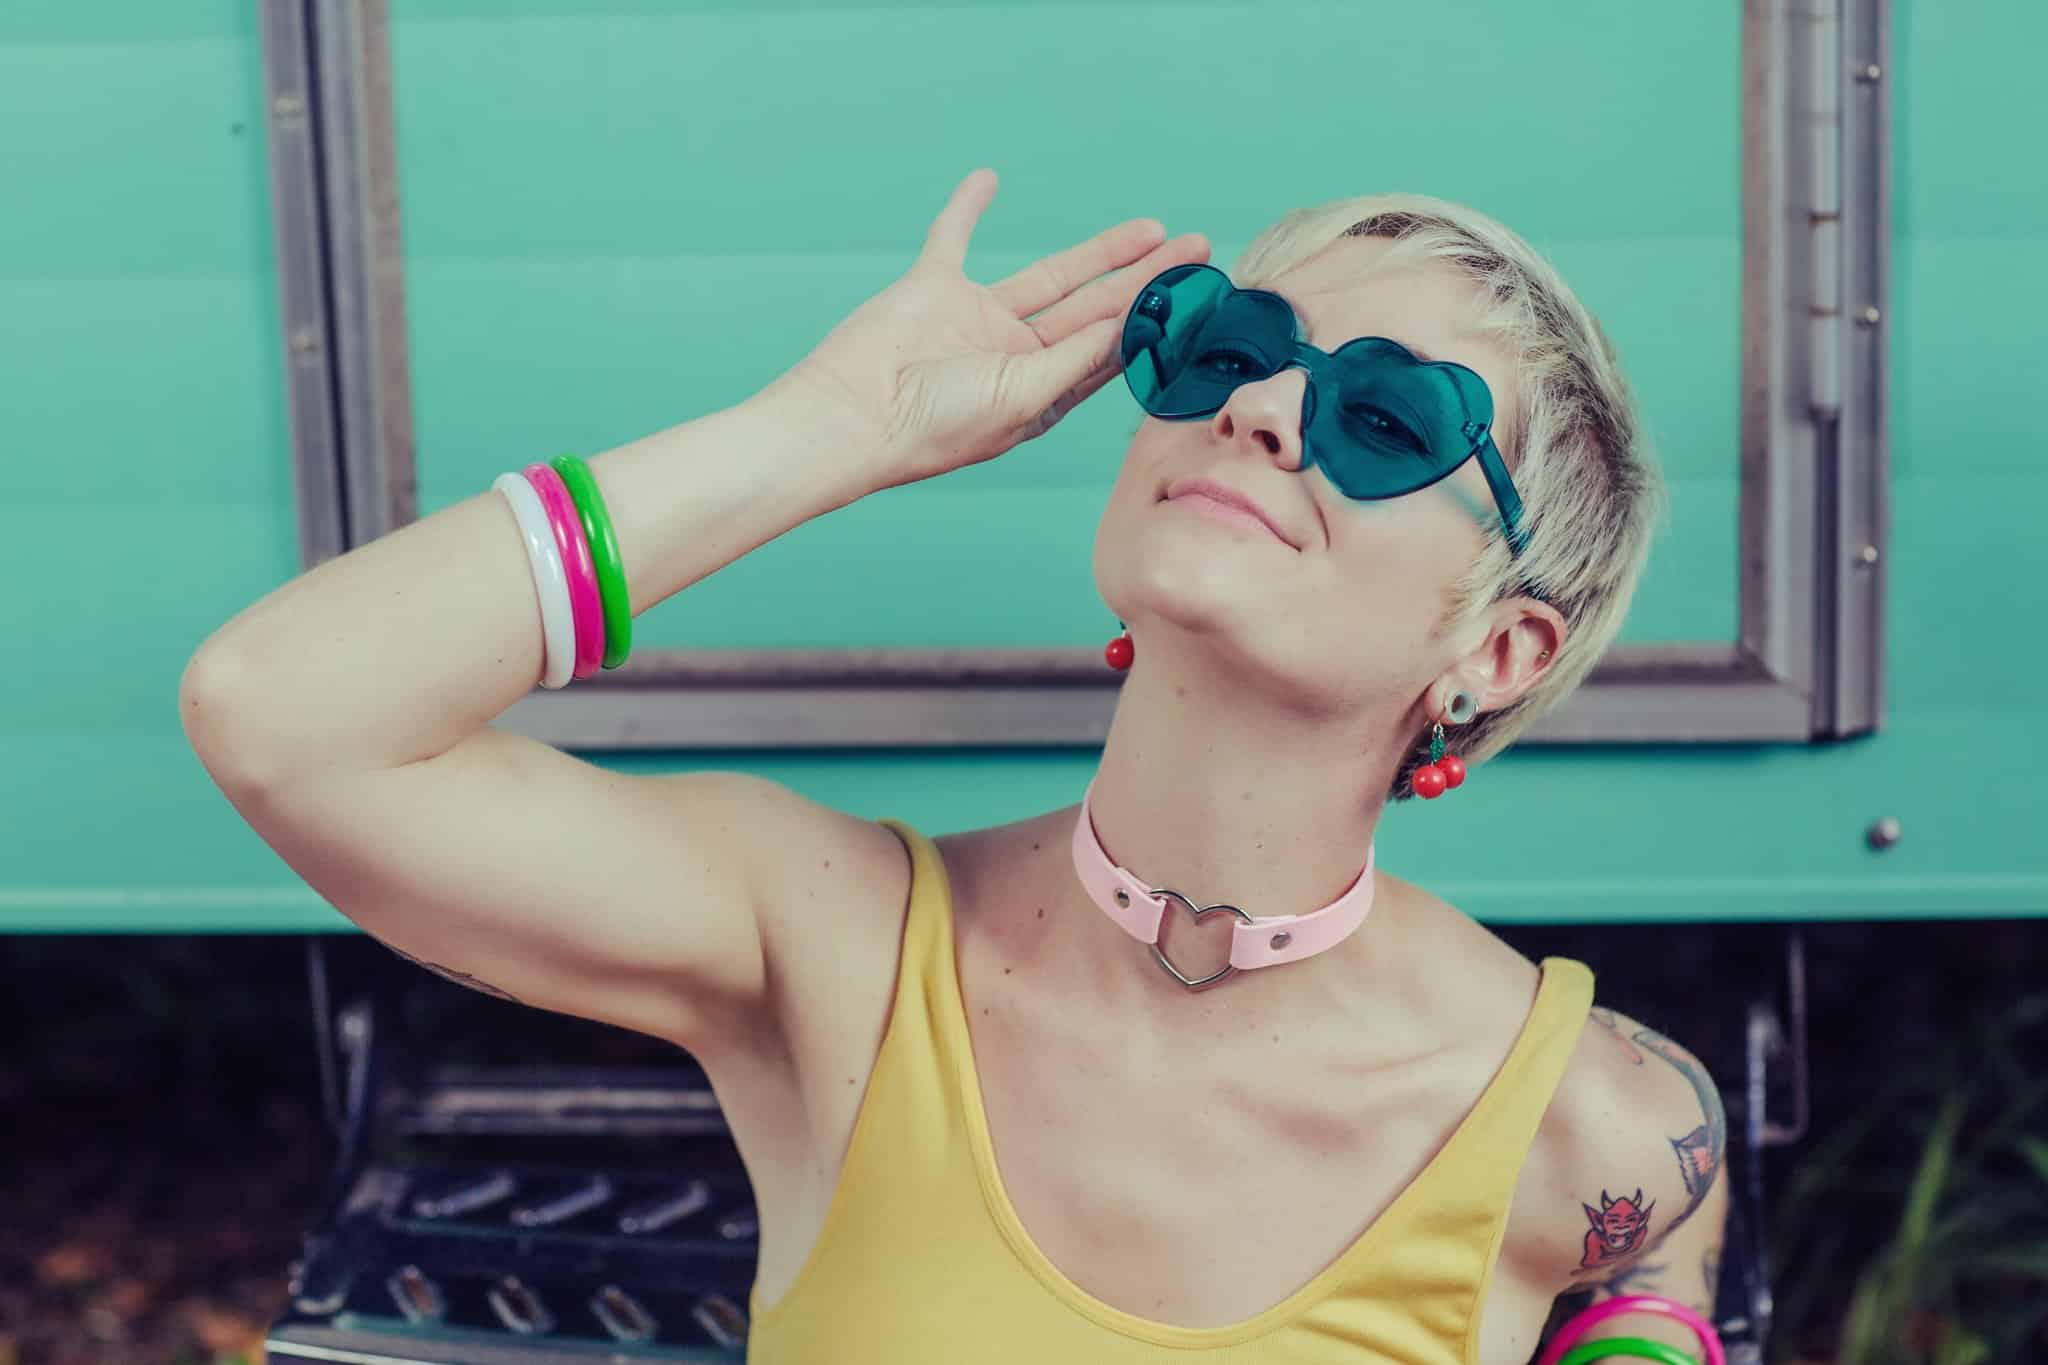 Personal Brand Kate Skales wearing teal heart shaped glasses and pink choker